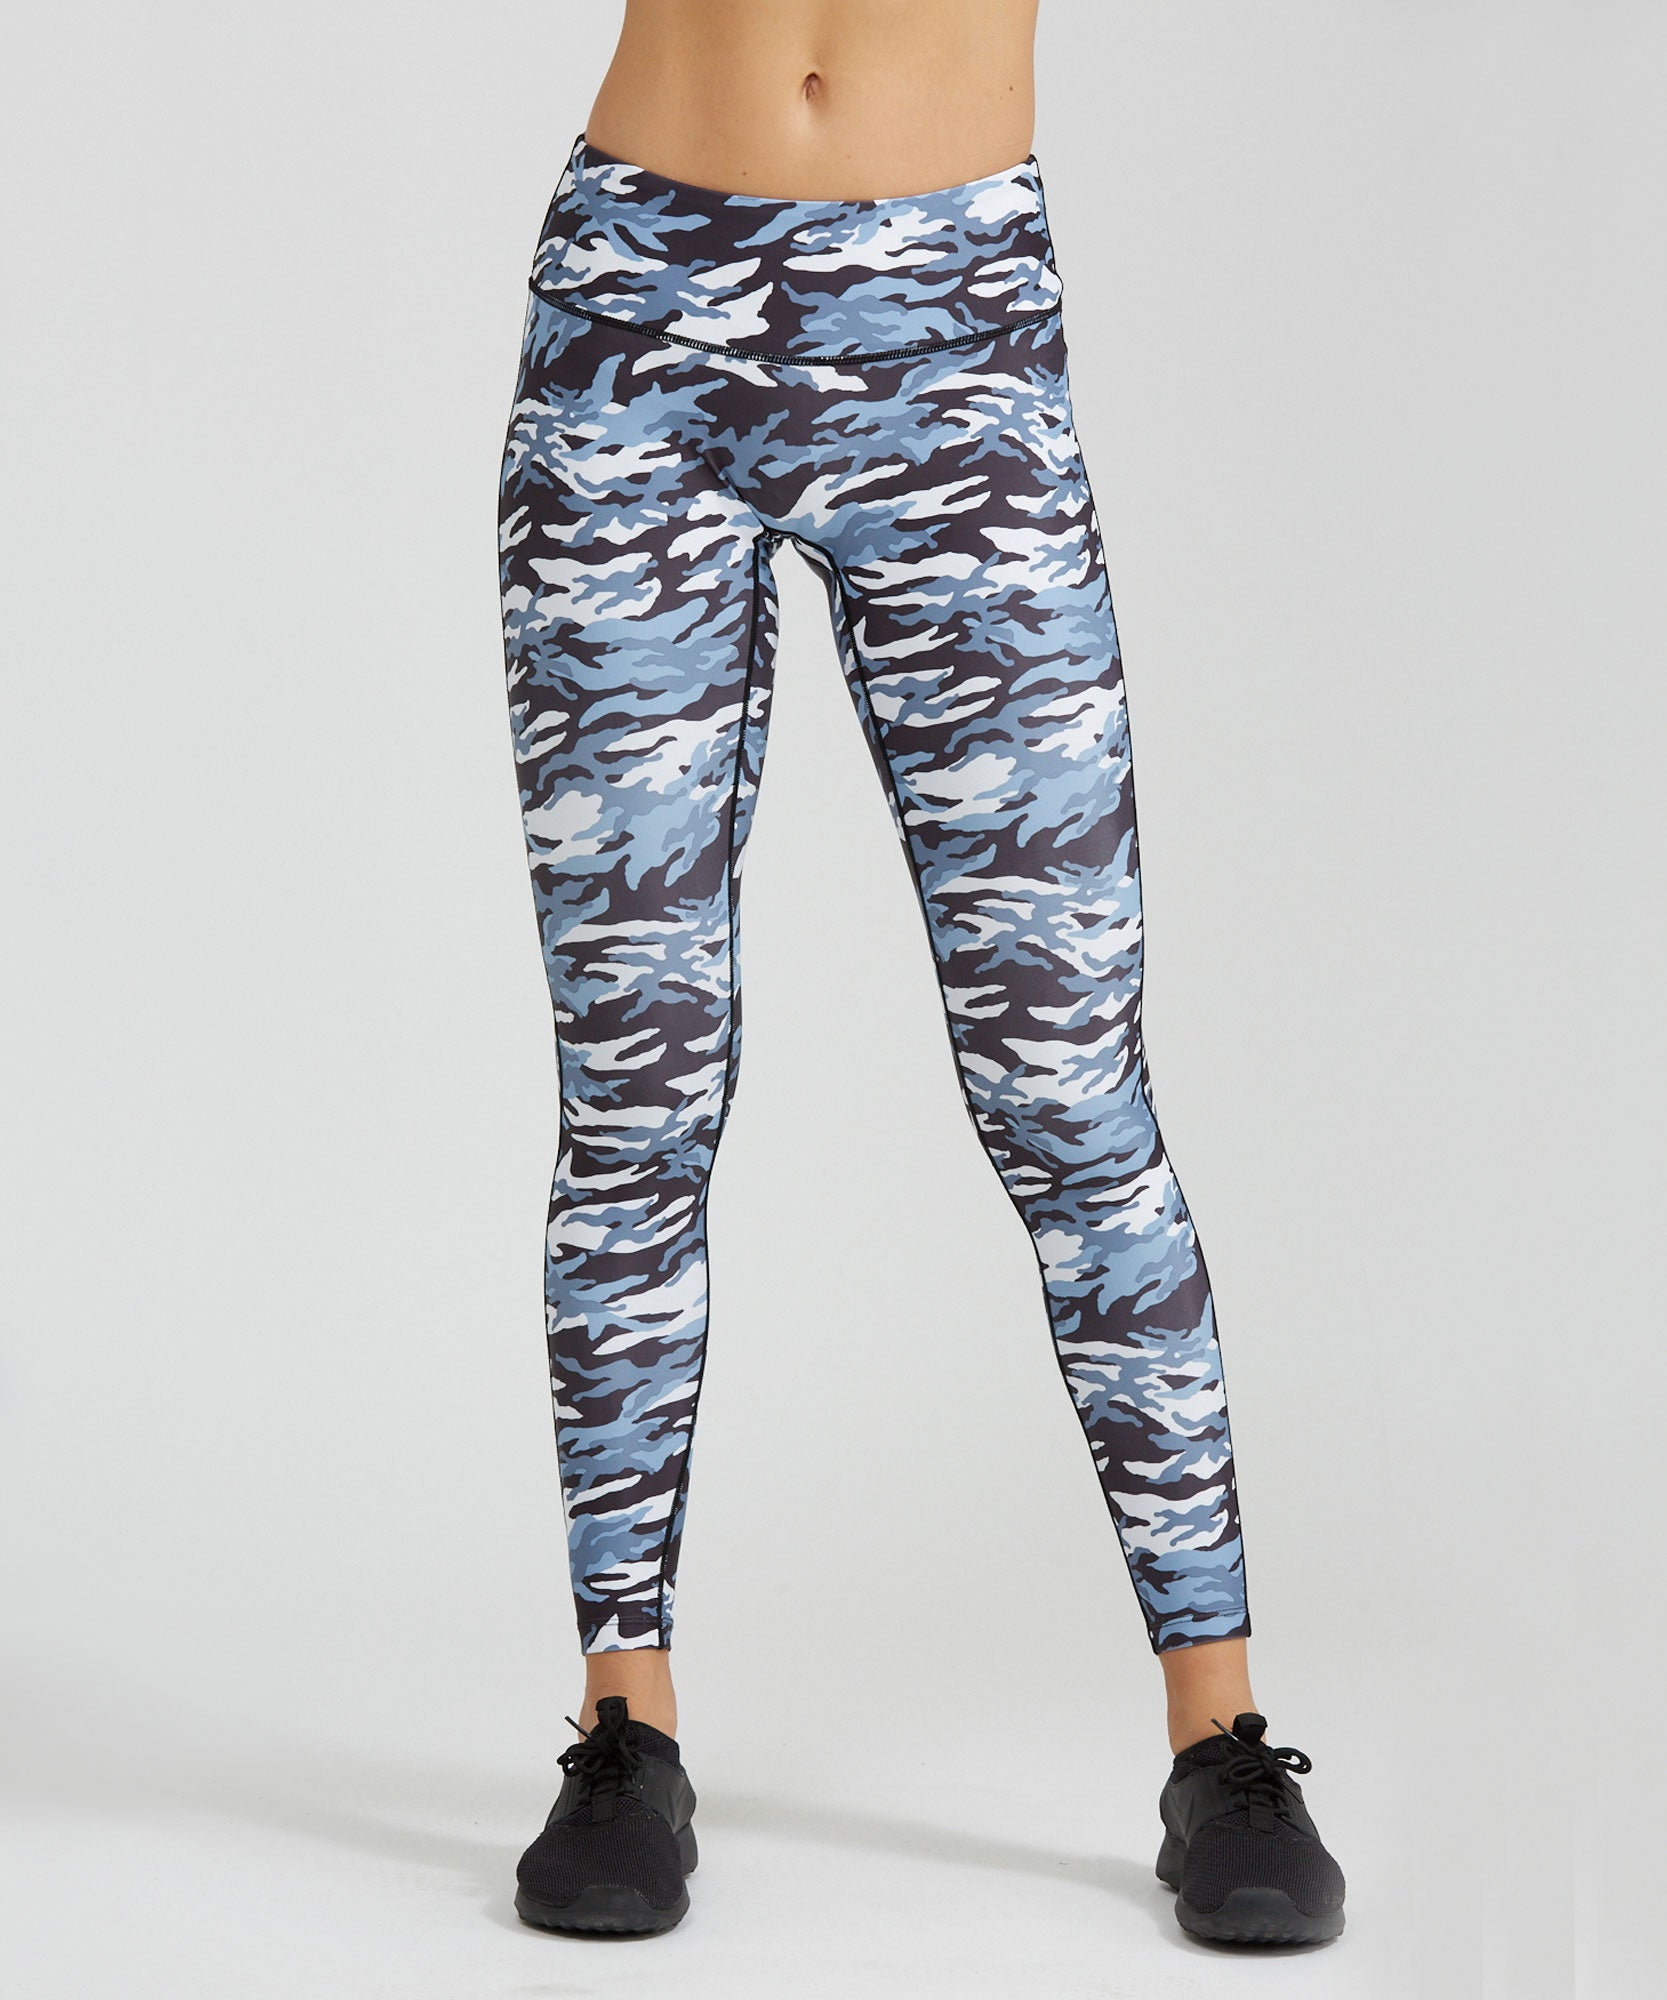 Fitspo Legging - Patton